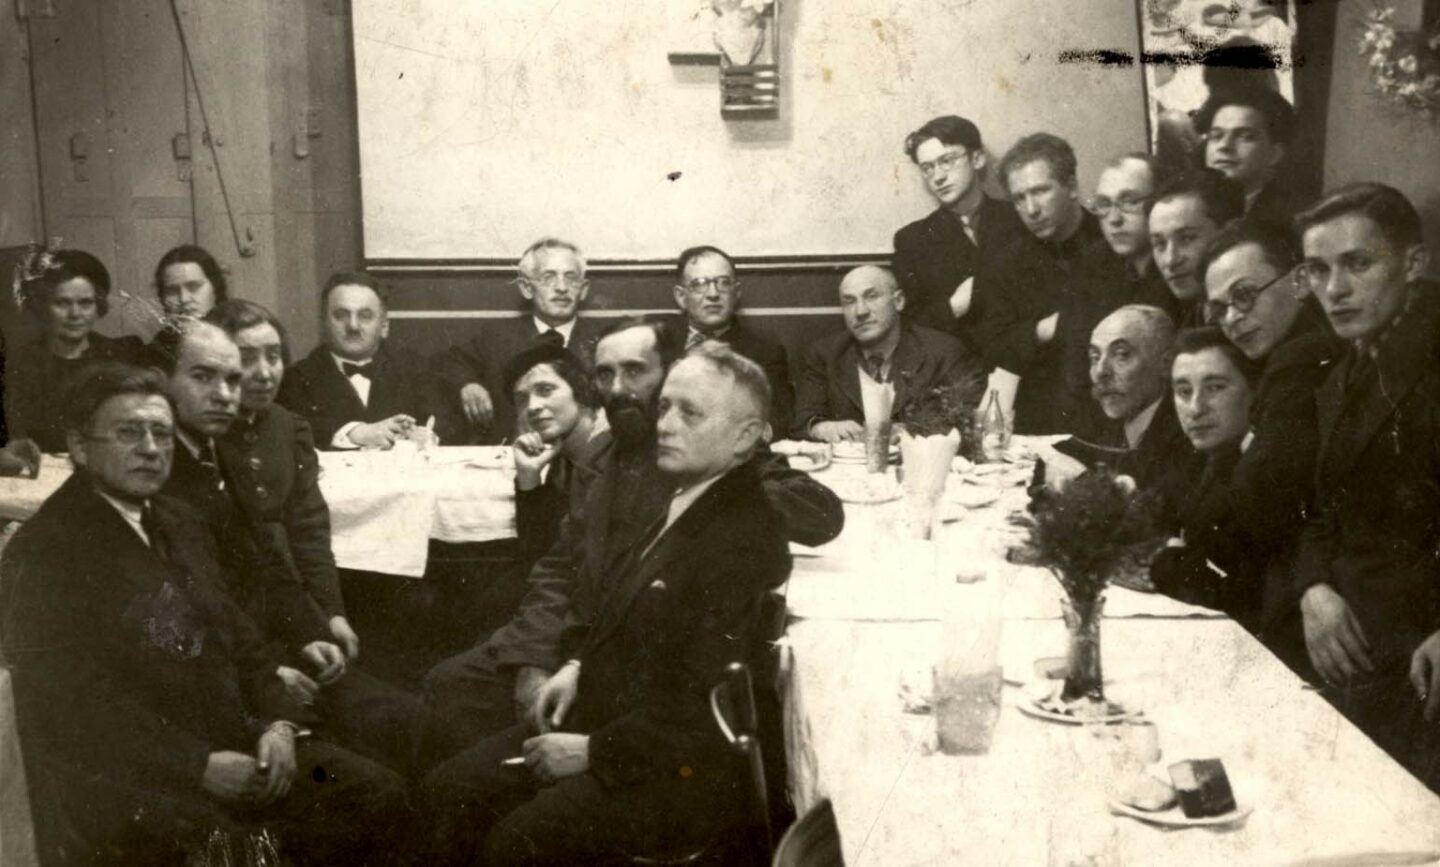 """<p>A farewell party for Falk Halperin at Velfke's restaurant in <span class=""""numbers"""">1938</span>, featuring a&nbsp;who's who of Vilne's Yiddishist cultural milieu. See below for a&nbsp;numbered identification of people in the photograph. Source: Yad Vashem, Photo Archive, Jerusalem, Archival Signature <sup class=""""numerator""""><span class=""""numbers"""">3380</span></sup>⁄<sub class=""""denominator""""><span class=""""numbers"""">296</span></sub>.</p>"""